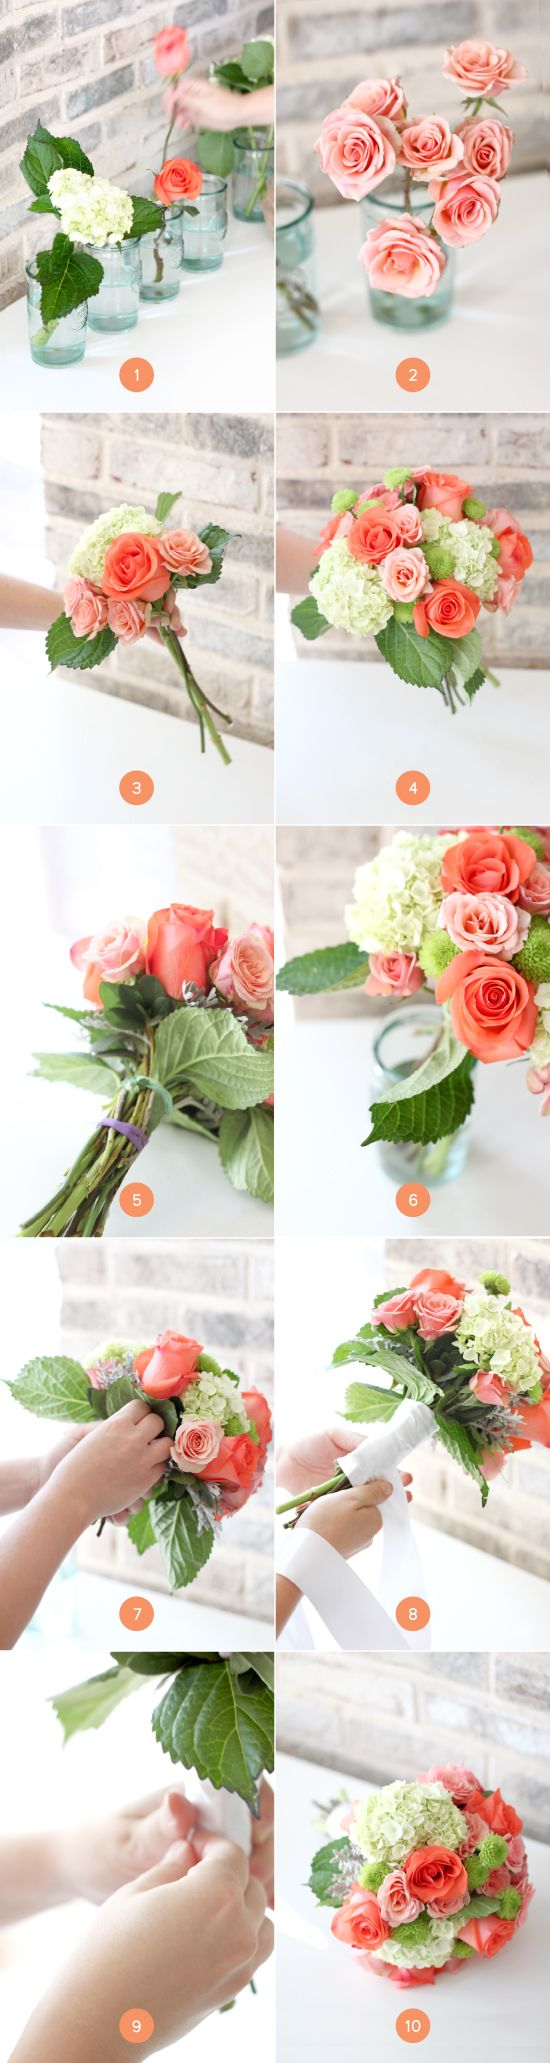 DIY Grocery Store Bridal Bouquet Wedding, Flower and